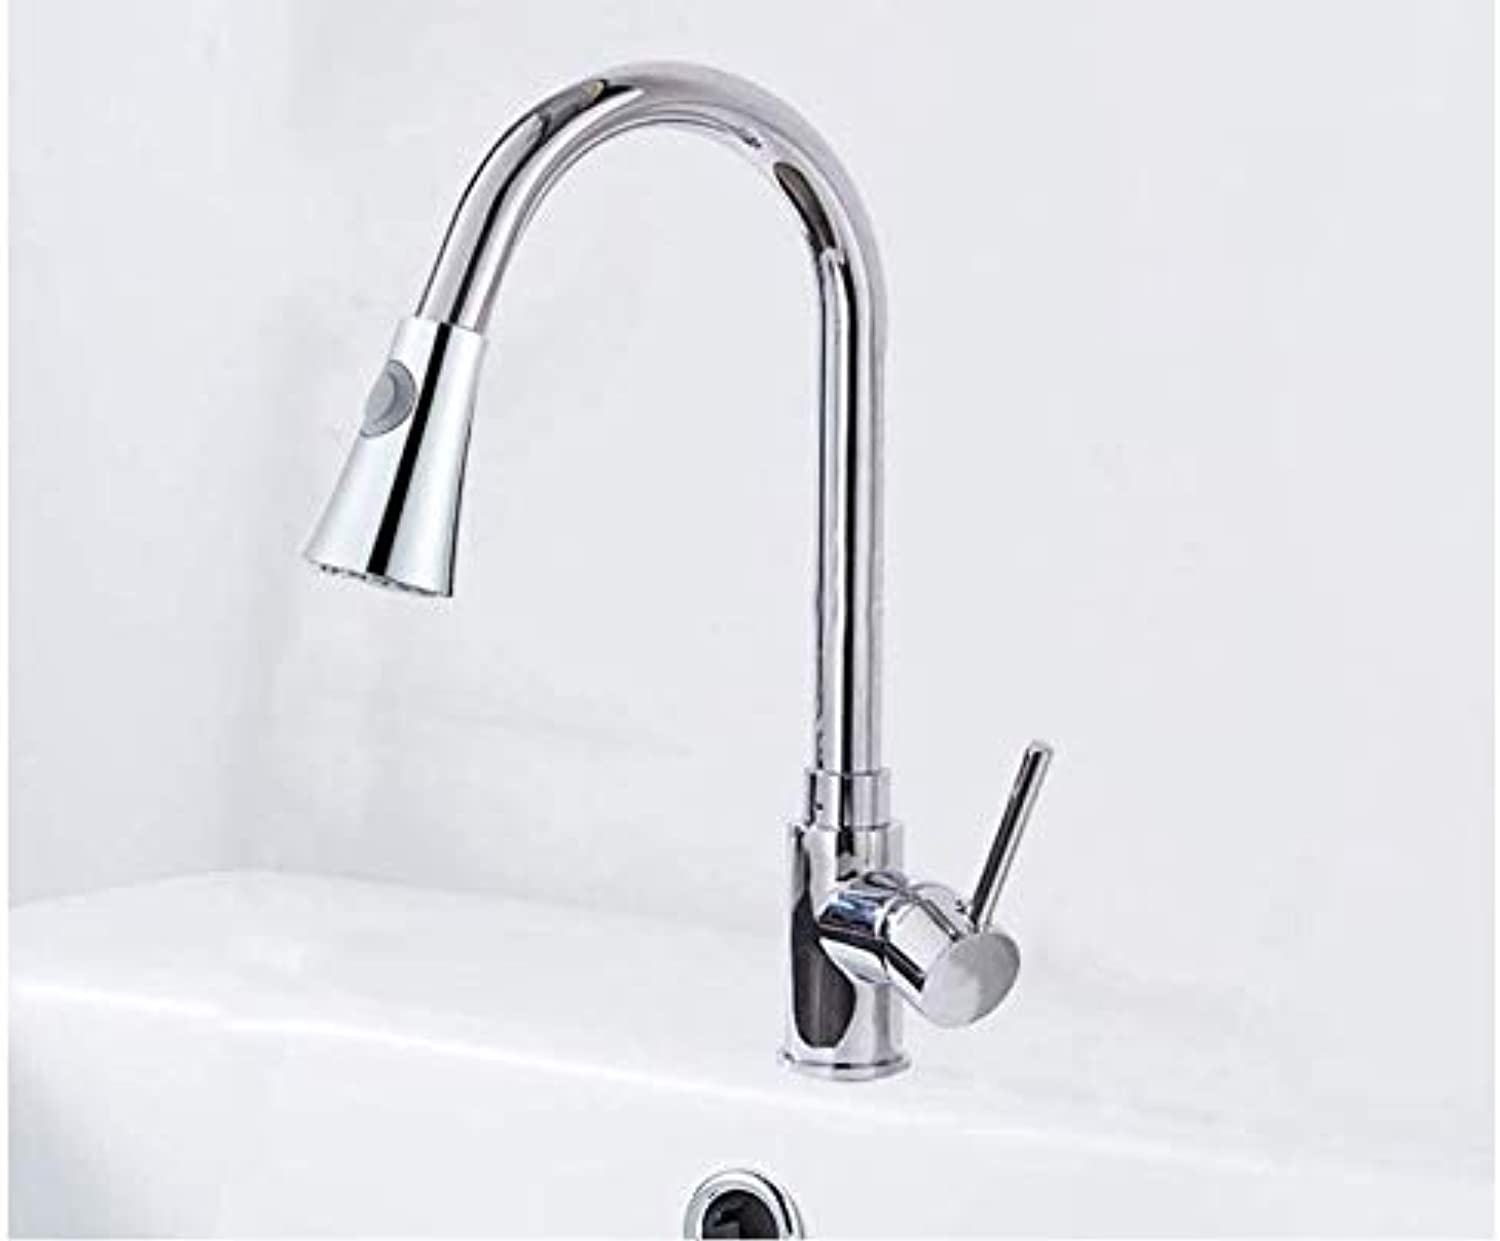 Water Tap Basin Sink Taps Kitchen Faucets Silver Single Handle Pull Out Kitchen Tap Single Hole Handle Swivel 360 Degree Water Mixer Tap Mixer Tap